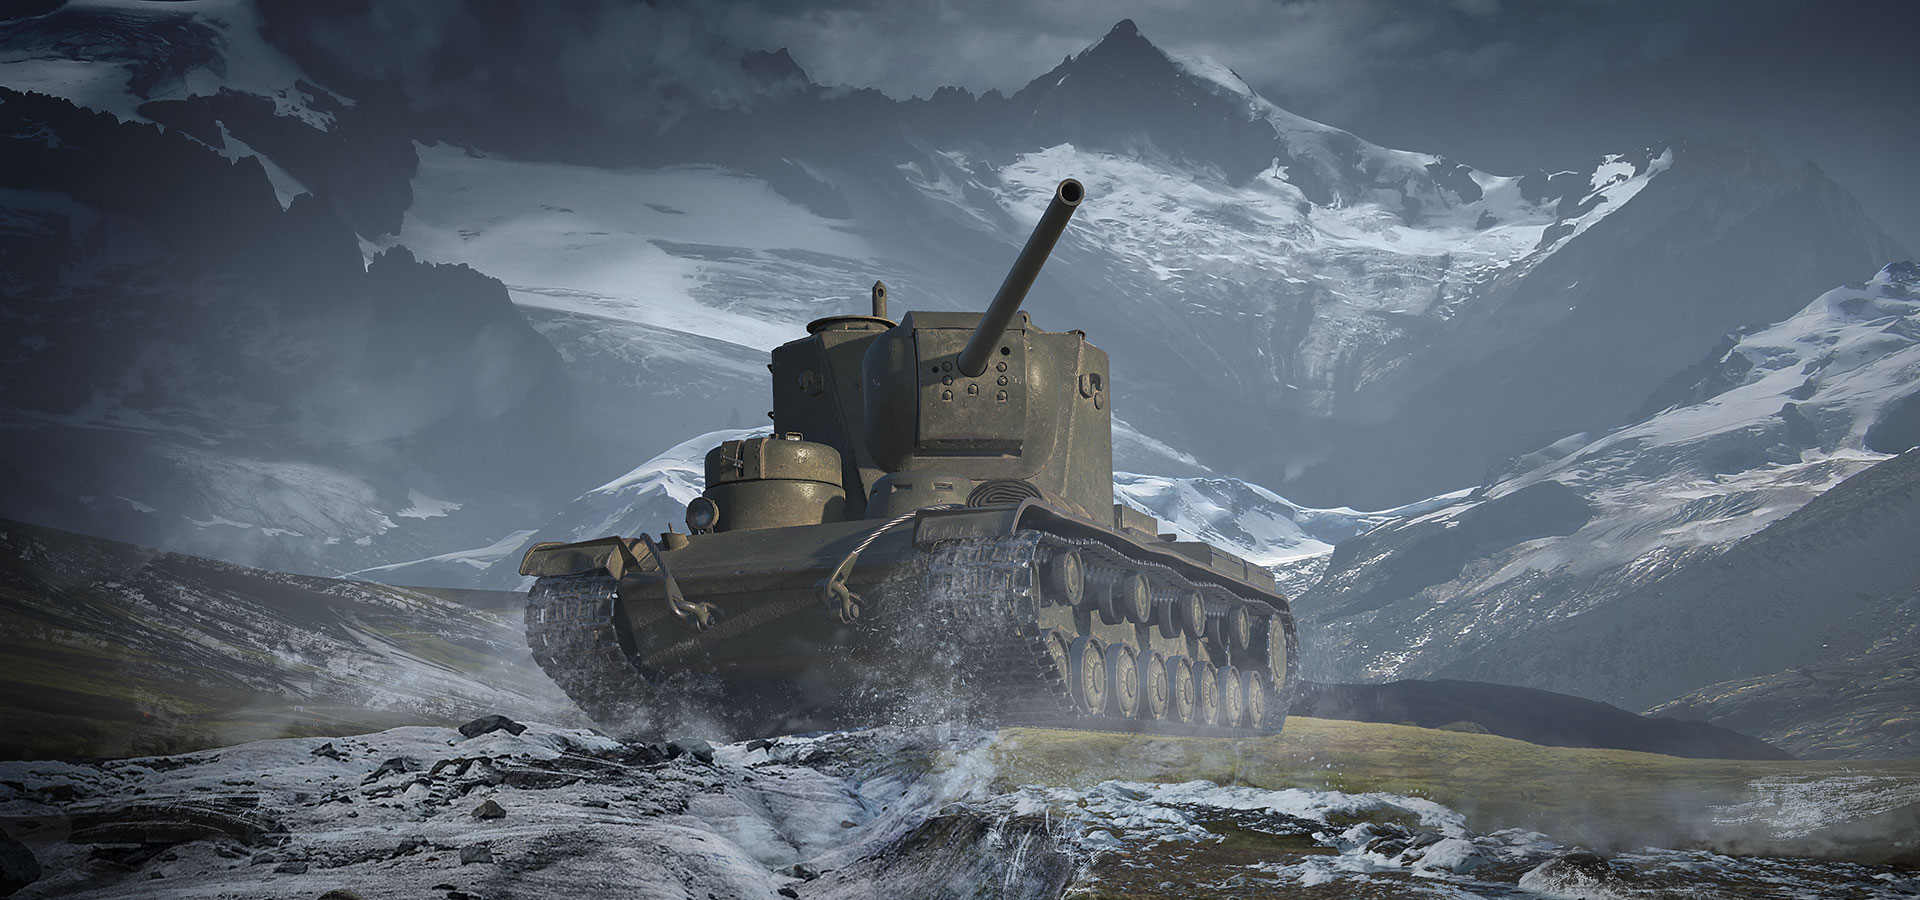 is de Super Pershing krijgen Premium matchmaking